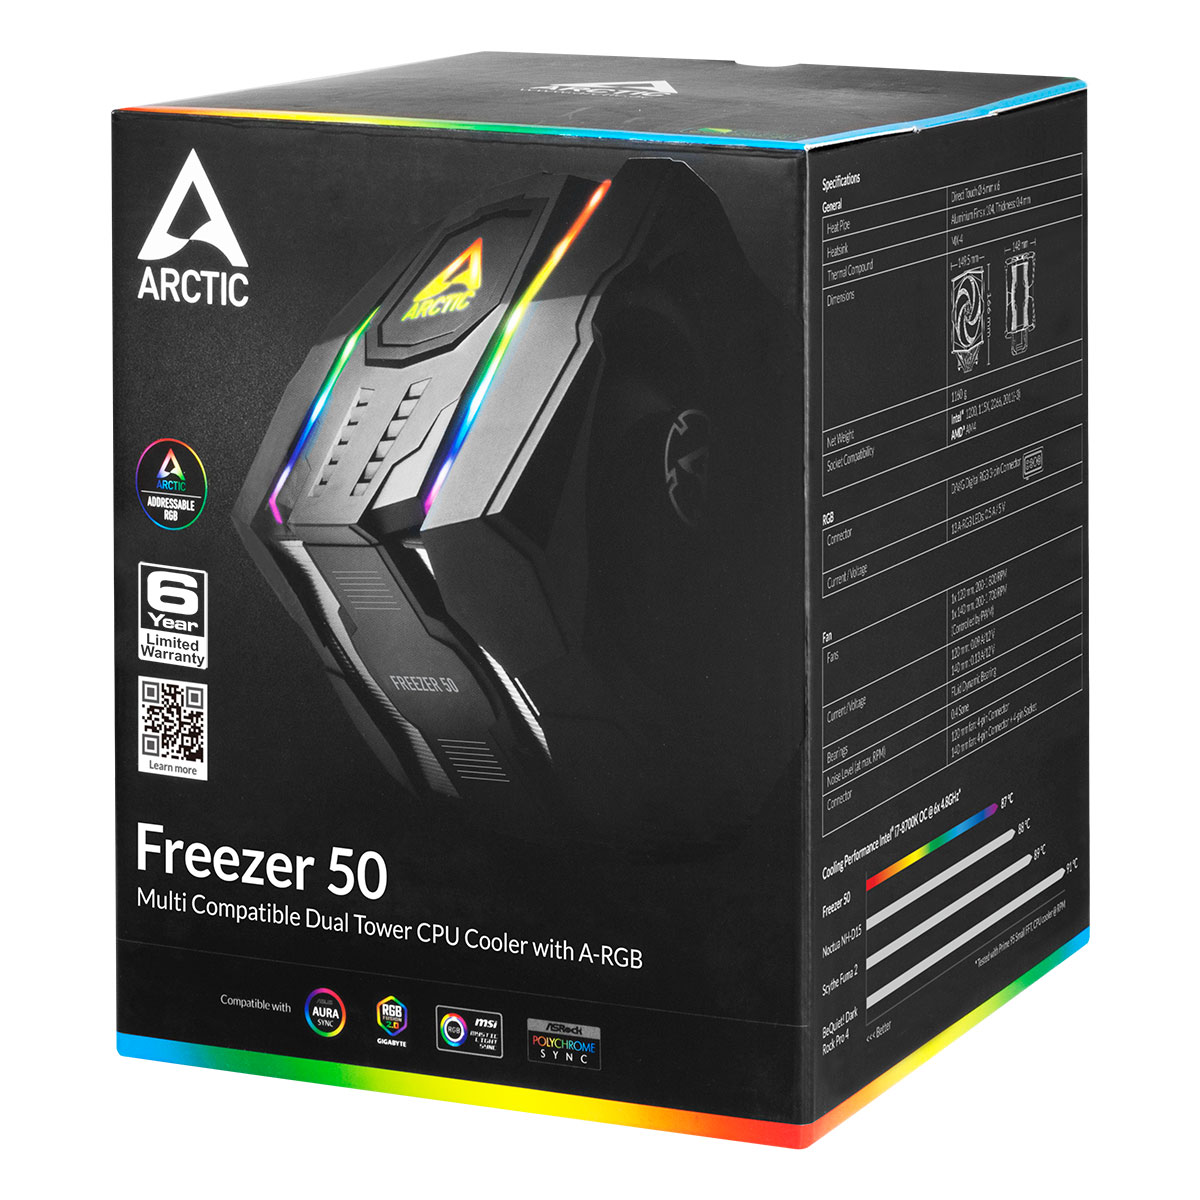 Multi Compatible Dual Tower CPU Cooler with A-RGB  ARCTIC Freezer 50 Packaging Front View